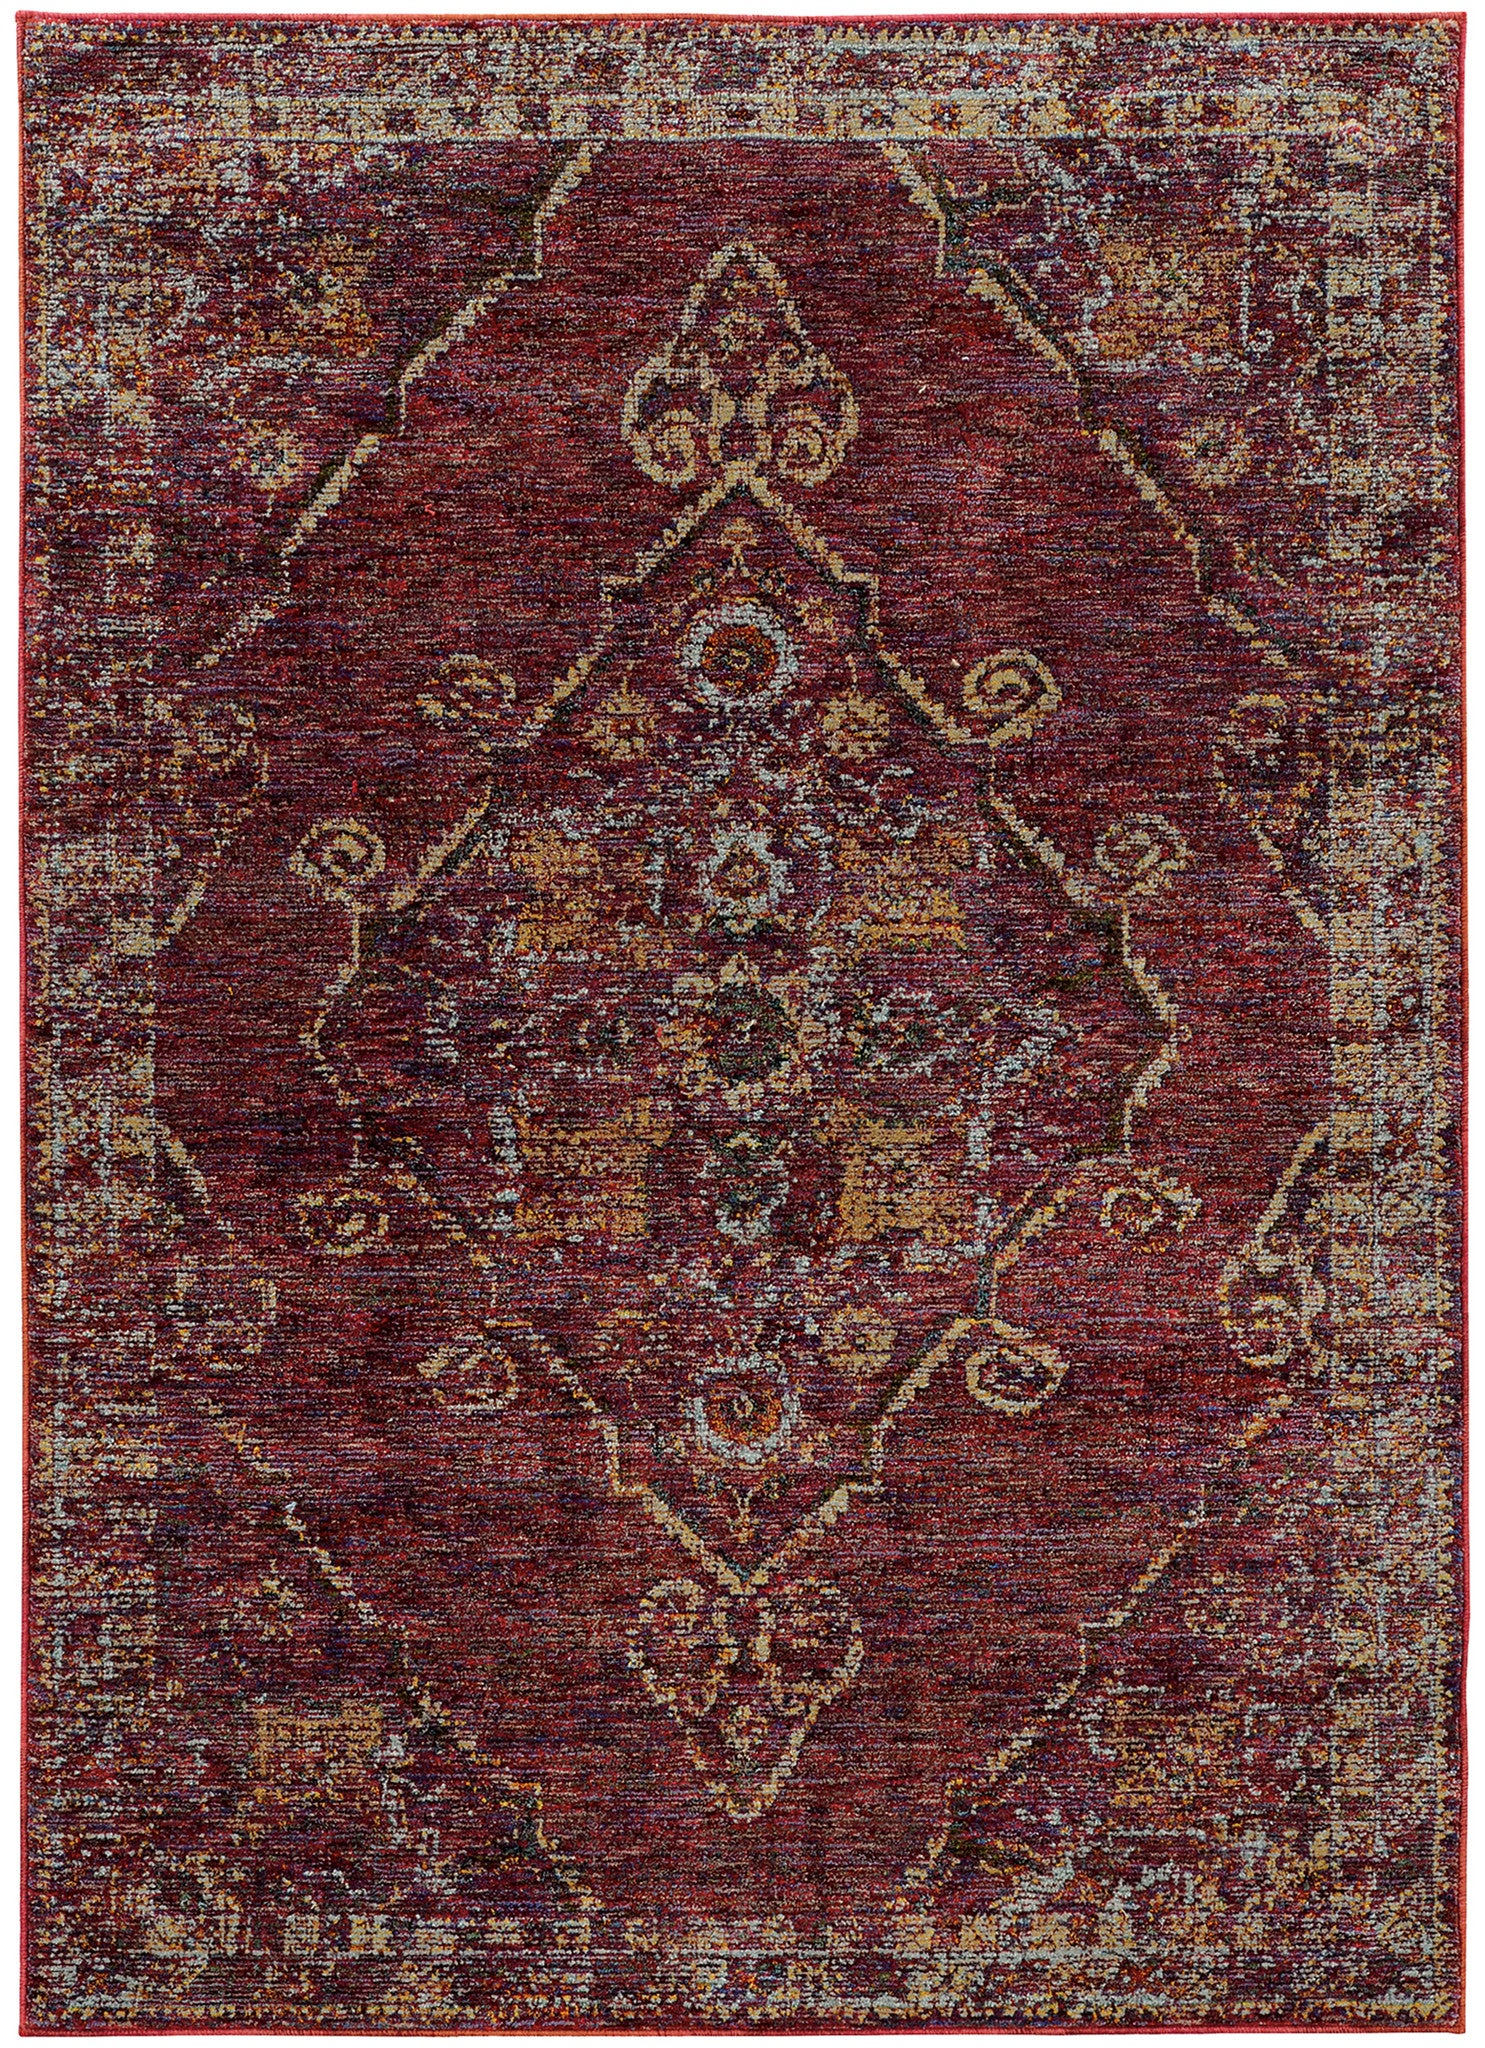 Maroon purple worn traditional vintage style rug woodwaves for Vintage style area rugs